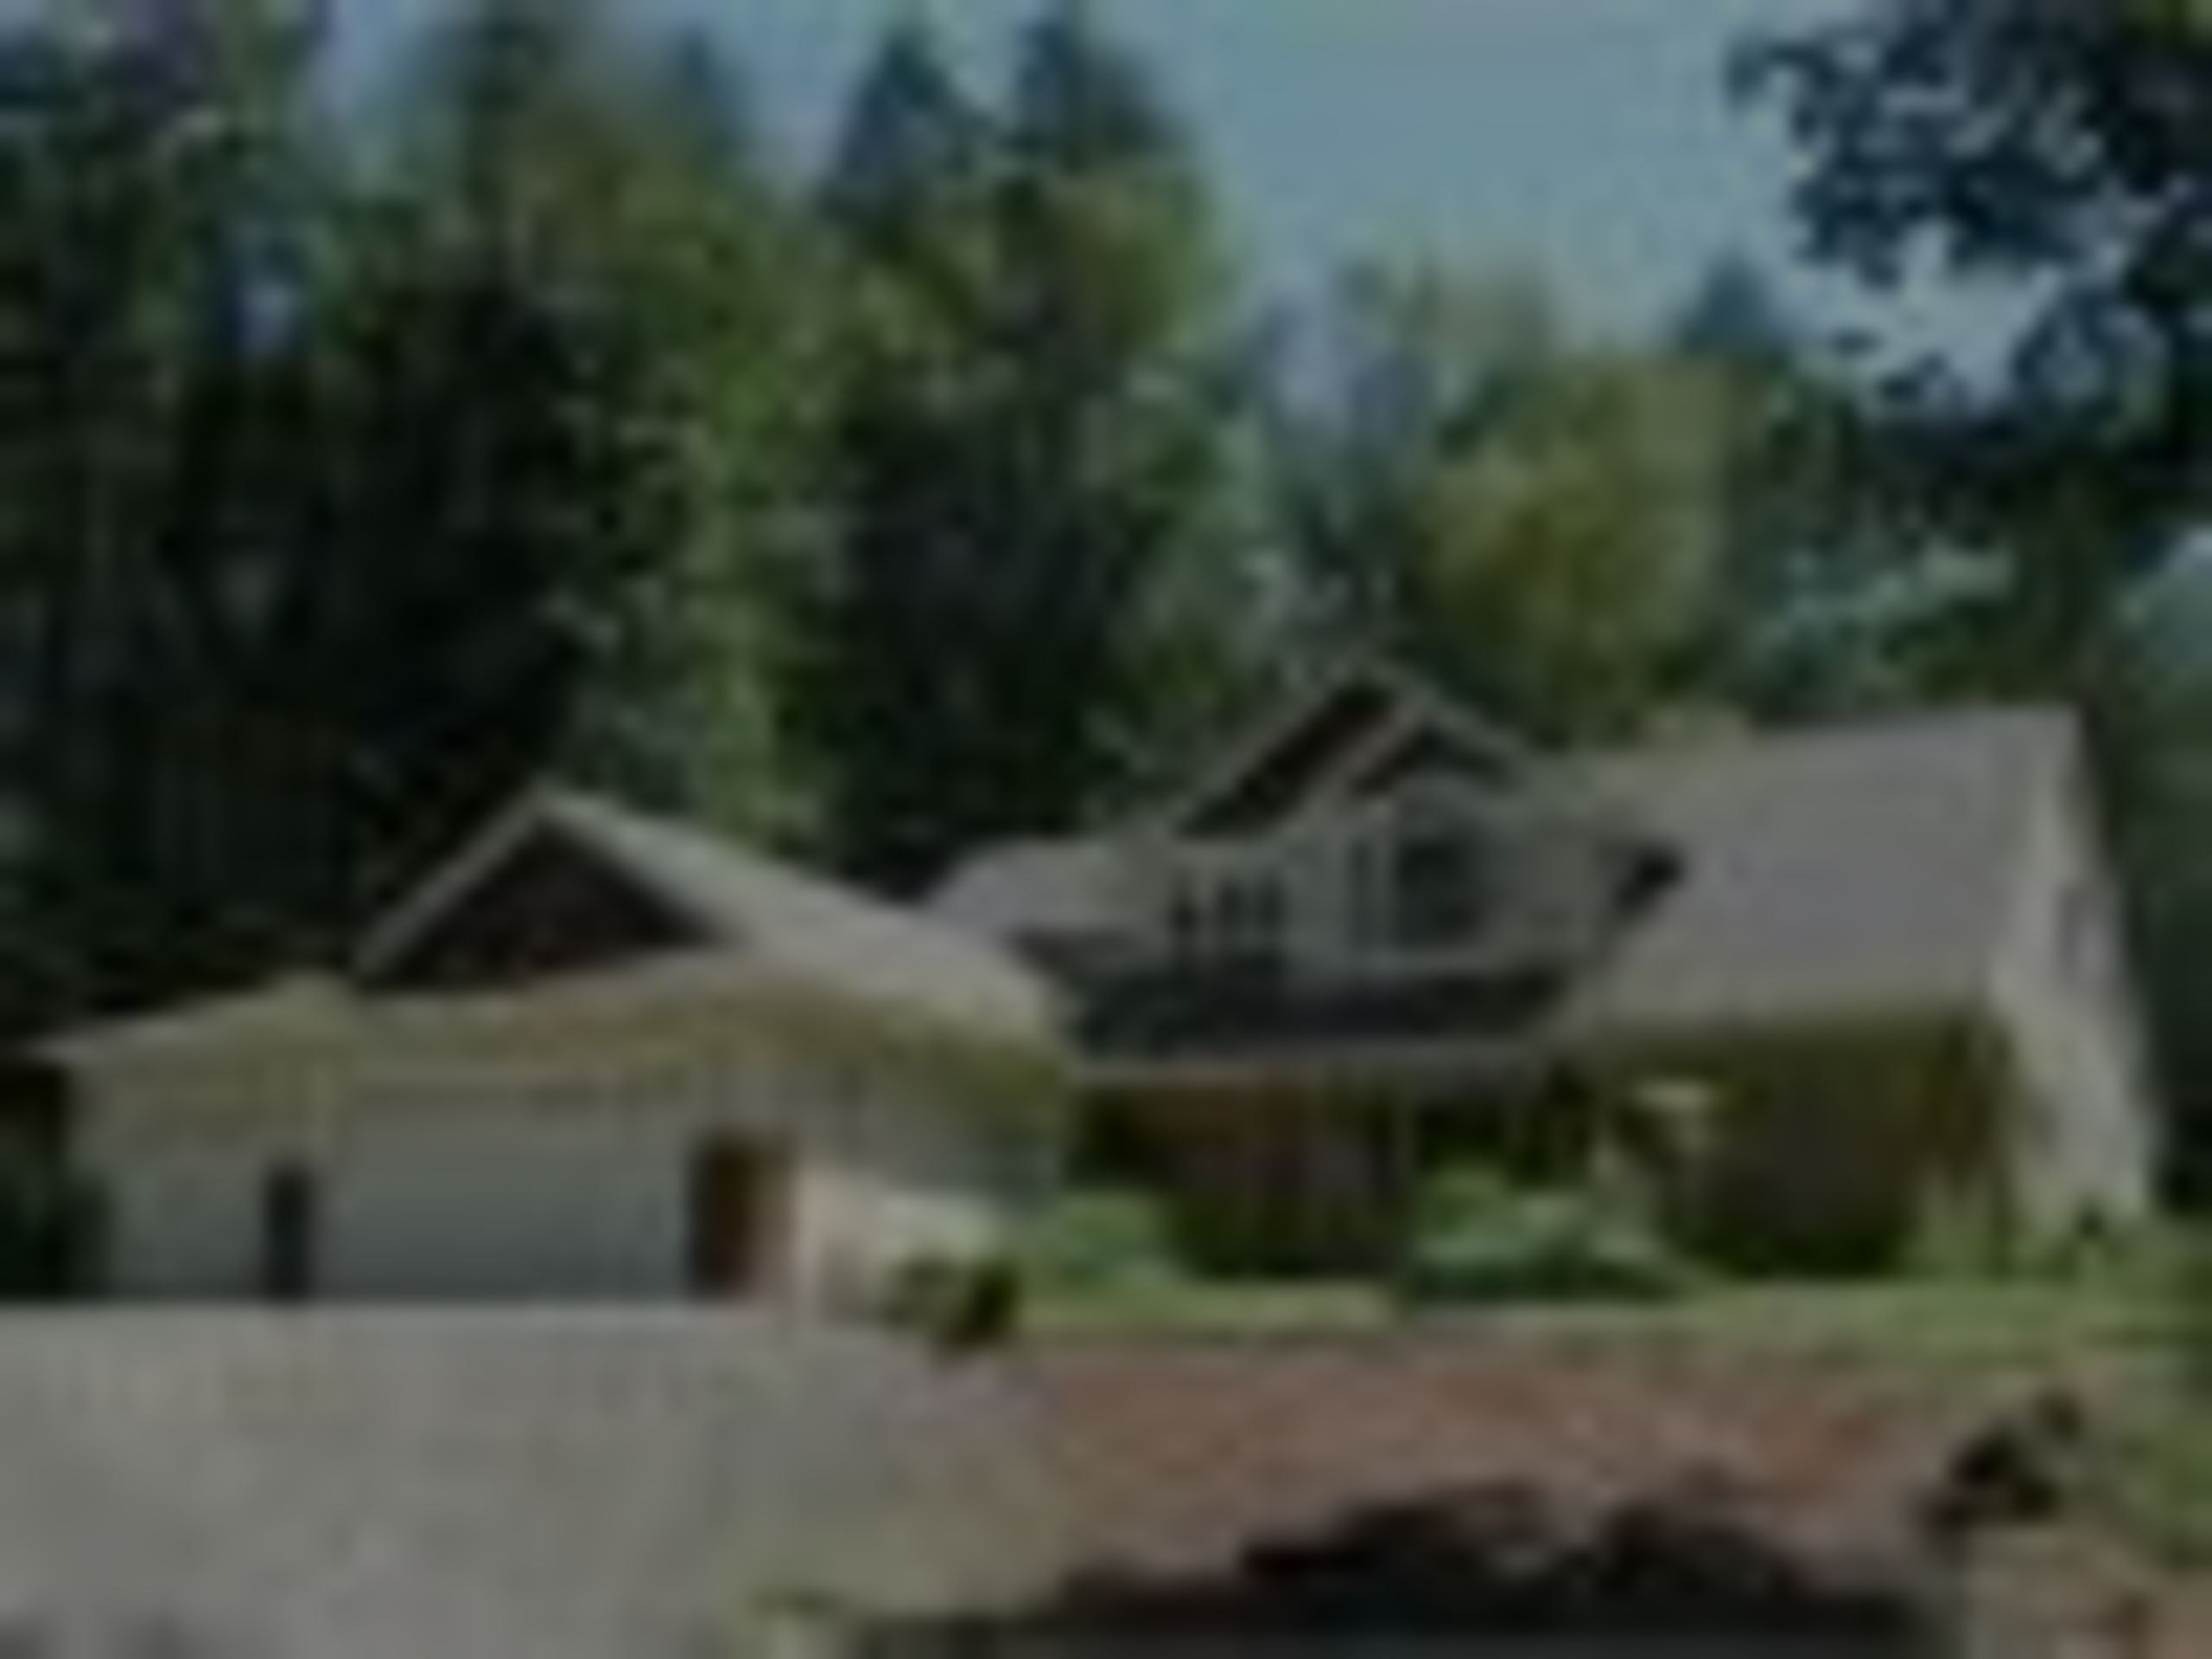 88890 BRIDGE ST, SPRINGFIELD, OREGON